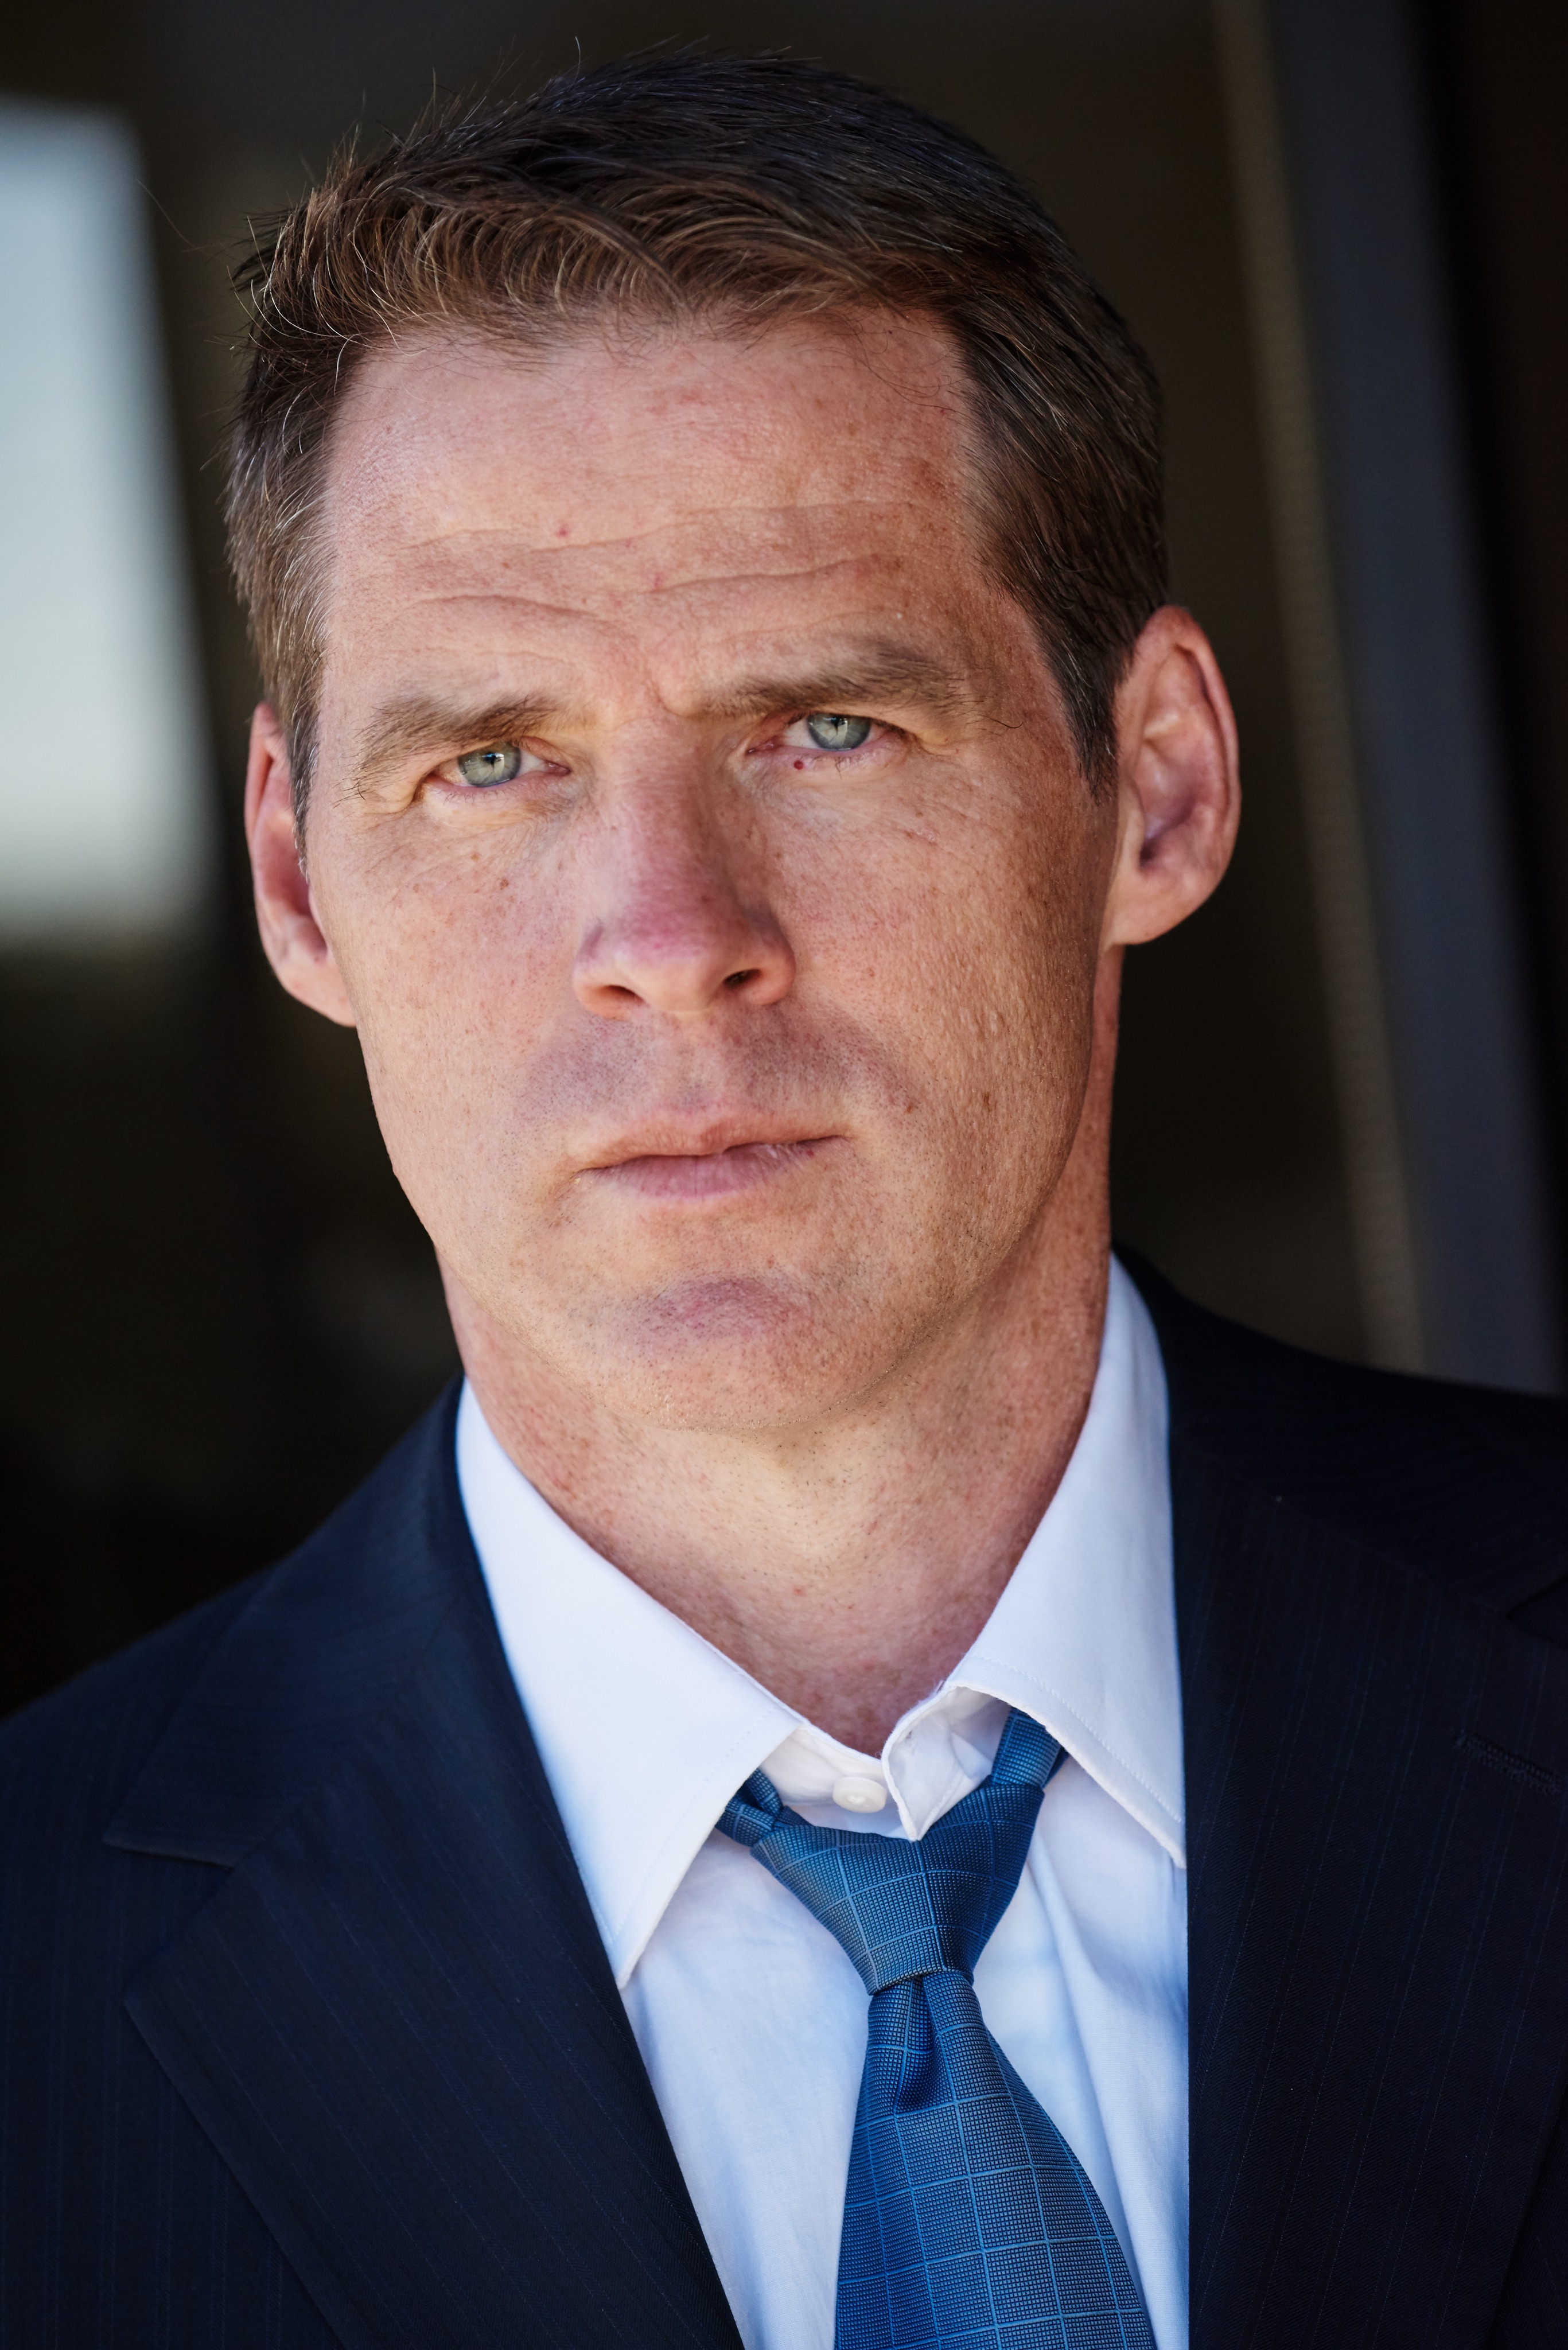 The 58-year old son of father (?) and mother(?) Ben Browder in 2021 photo. Ben Browder earned a  million dollar salary - leaving the net worth at 1 million in 2021